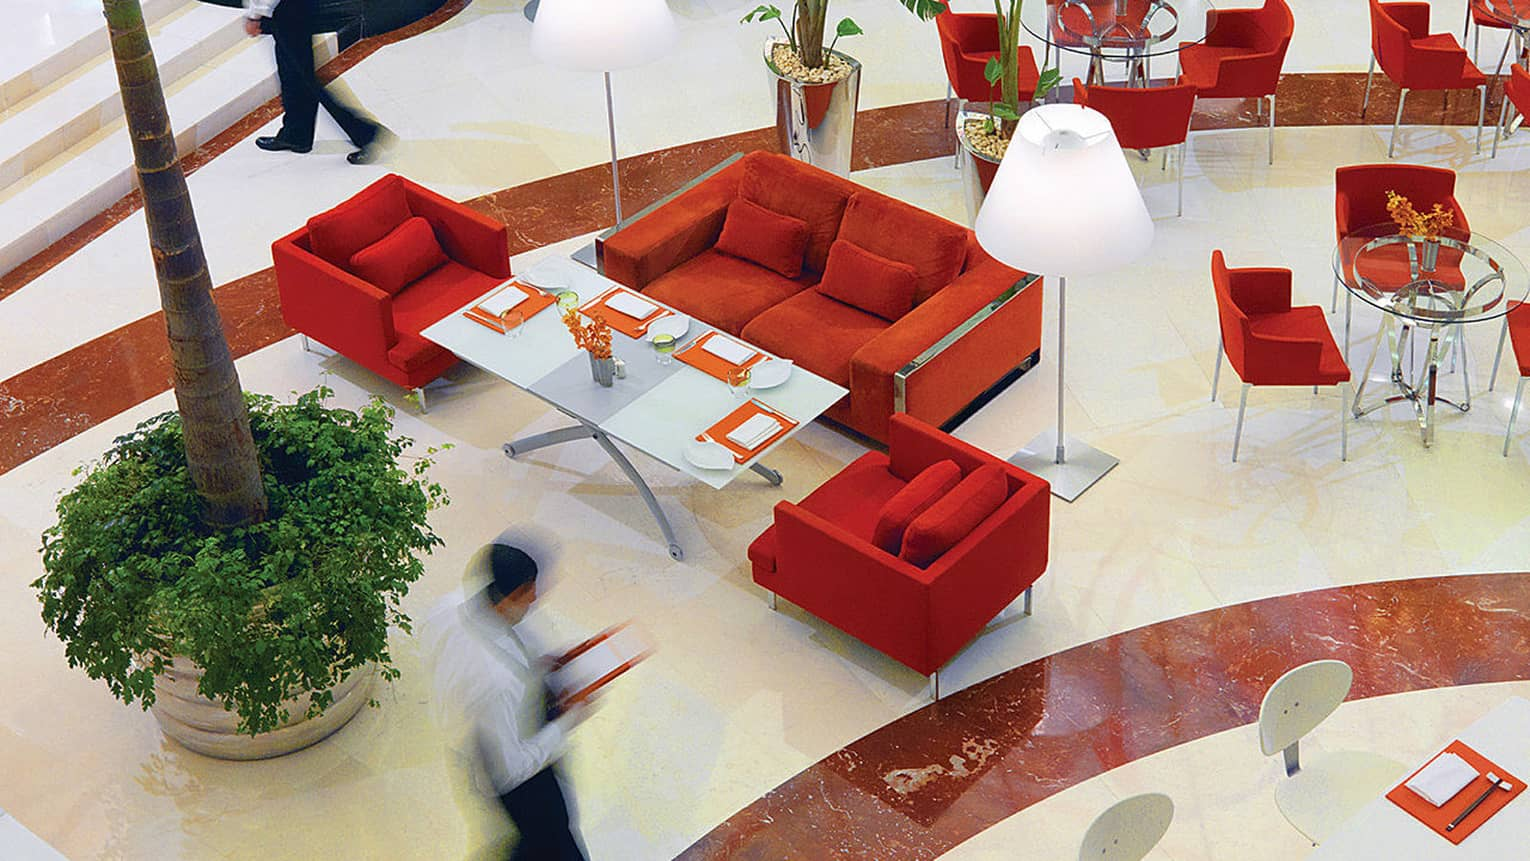 Aerial view of server walking quickly through Beymen Cafe, past red sofas and chairs and indoor tree